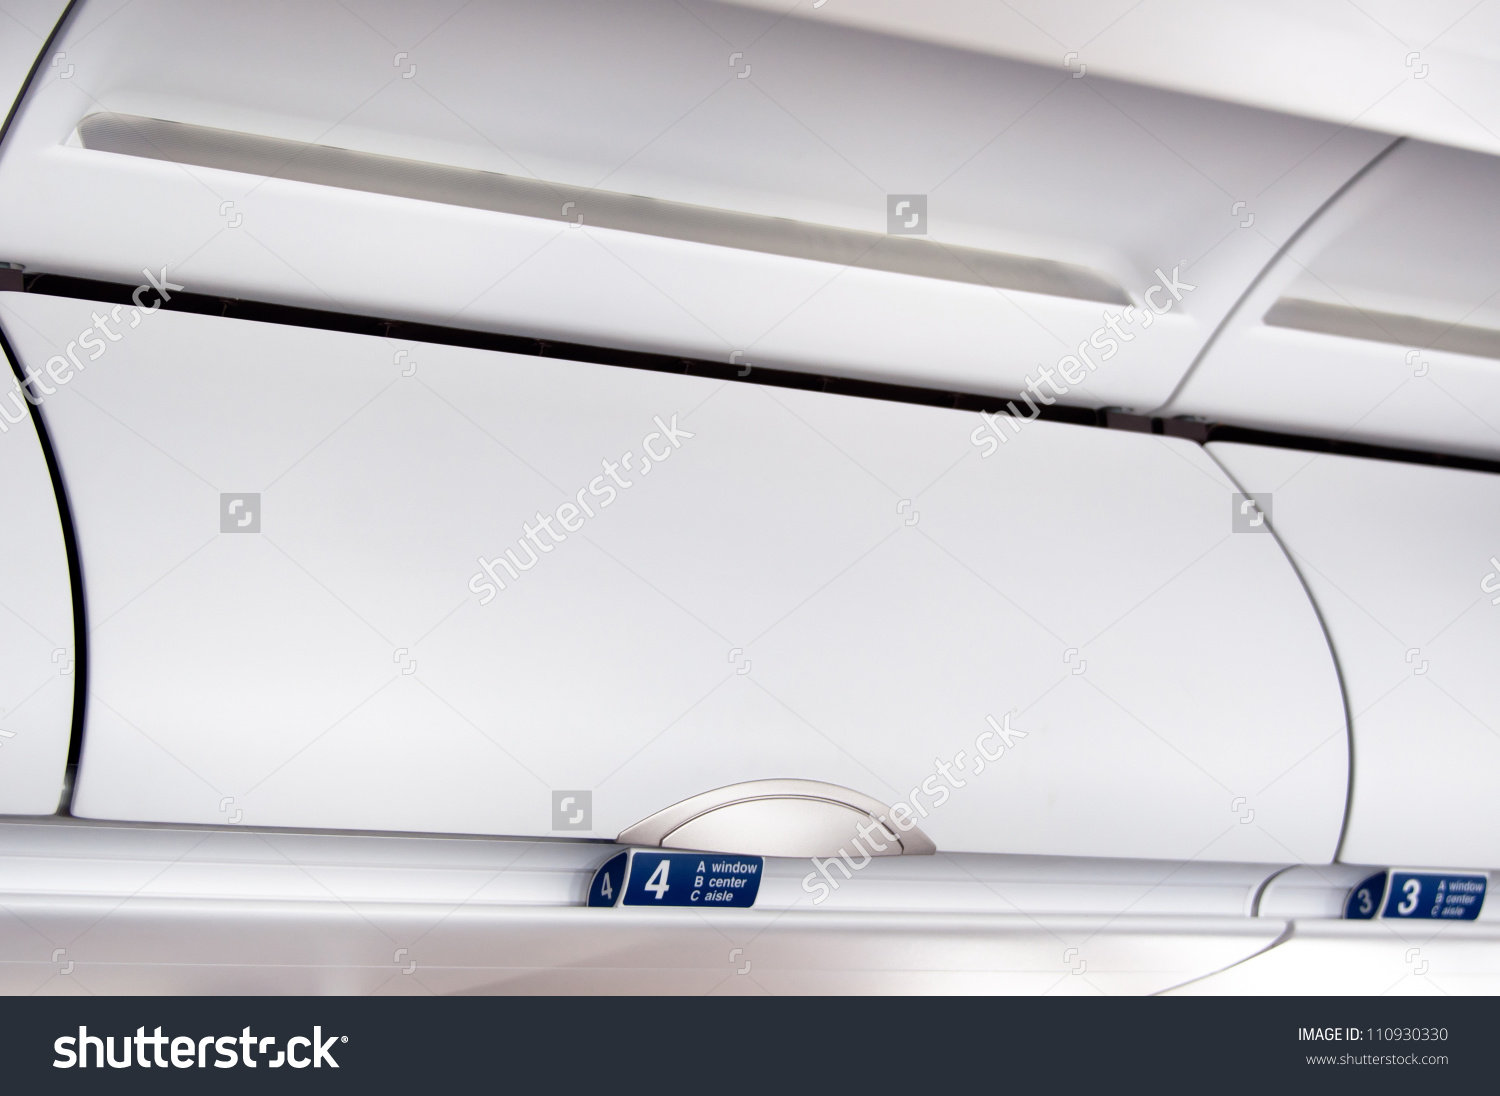 Overhead Compartment Detail Shot Airplane Cabin Stock Photo.